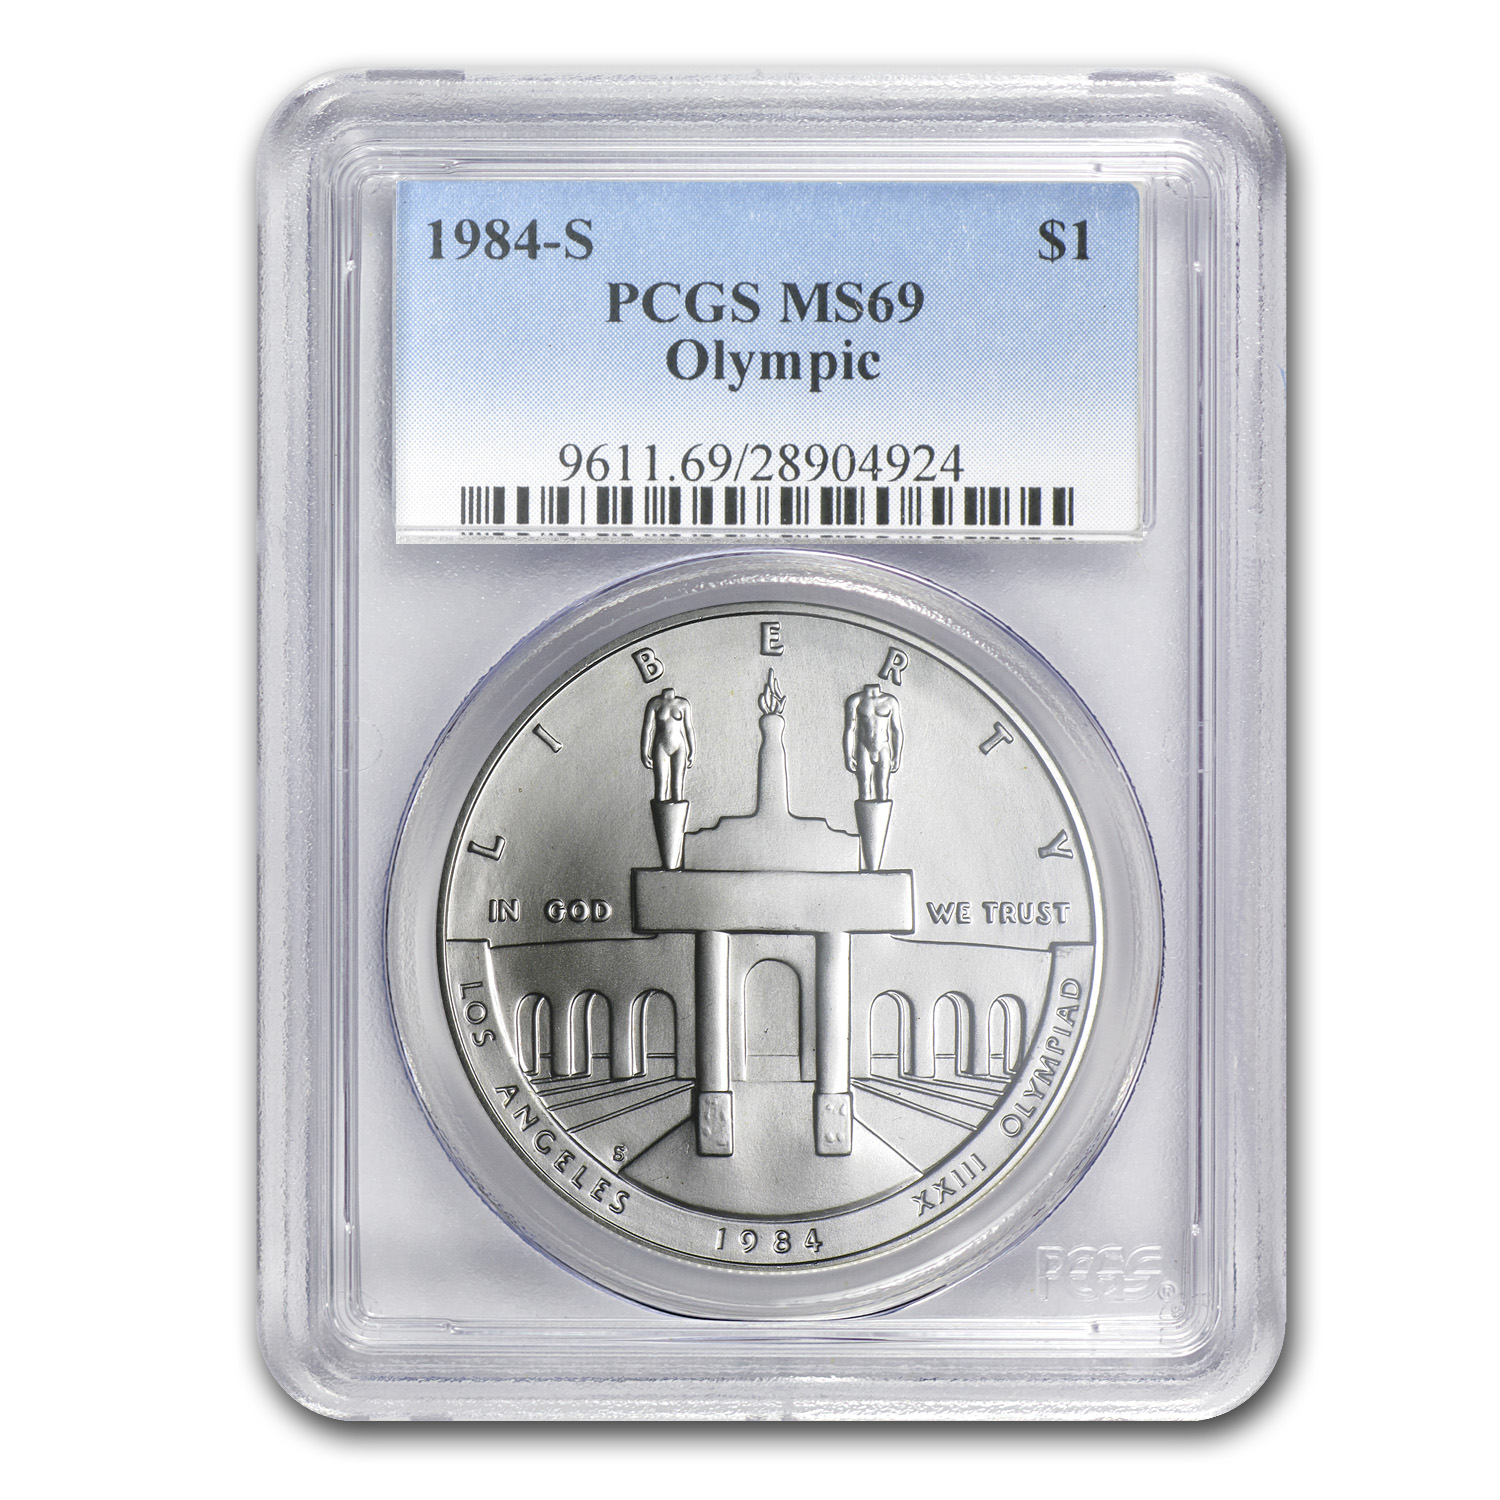 1984-S Olympic $1 Silver Commemorative MS-69 PCGS